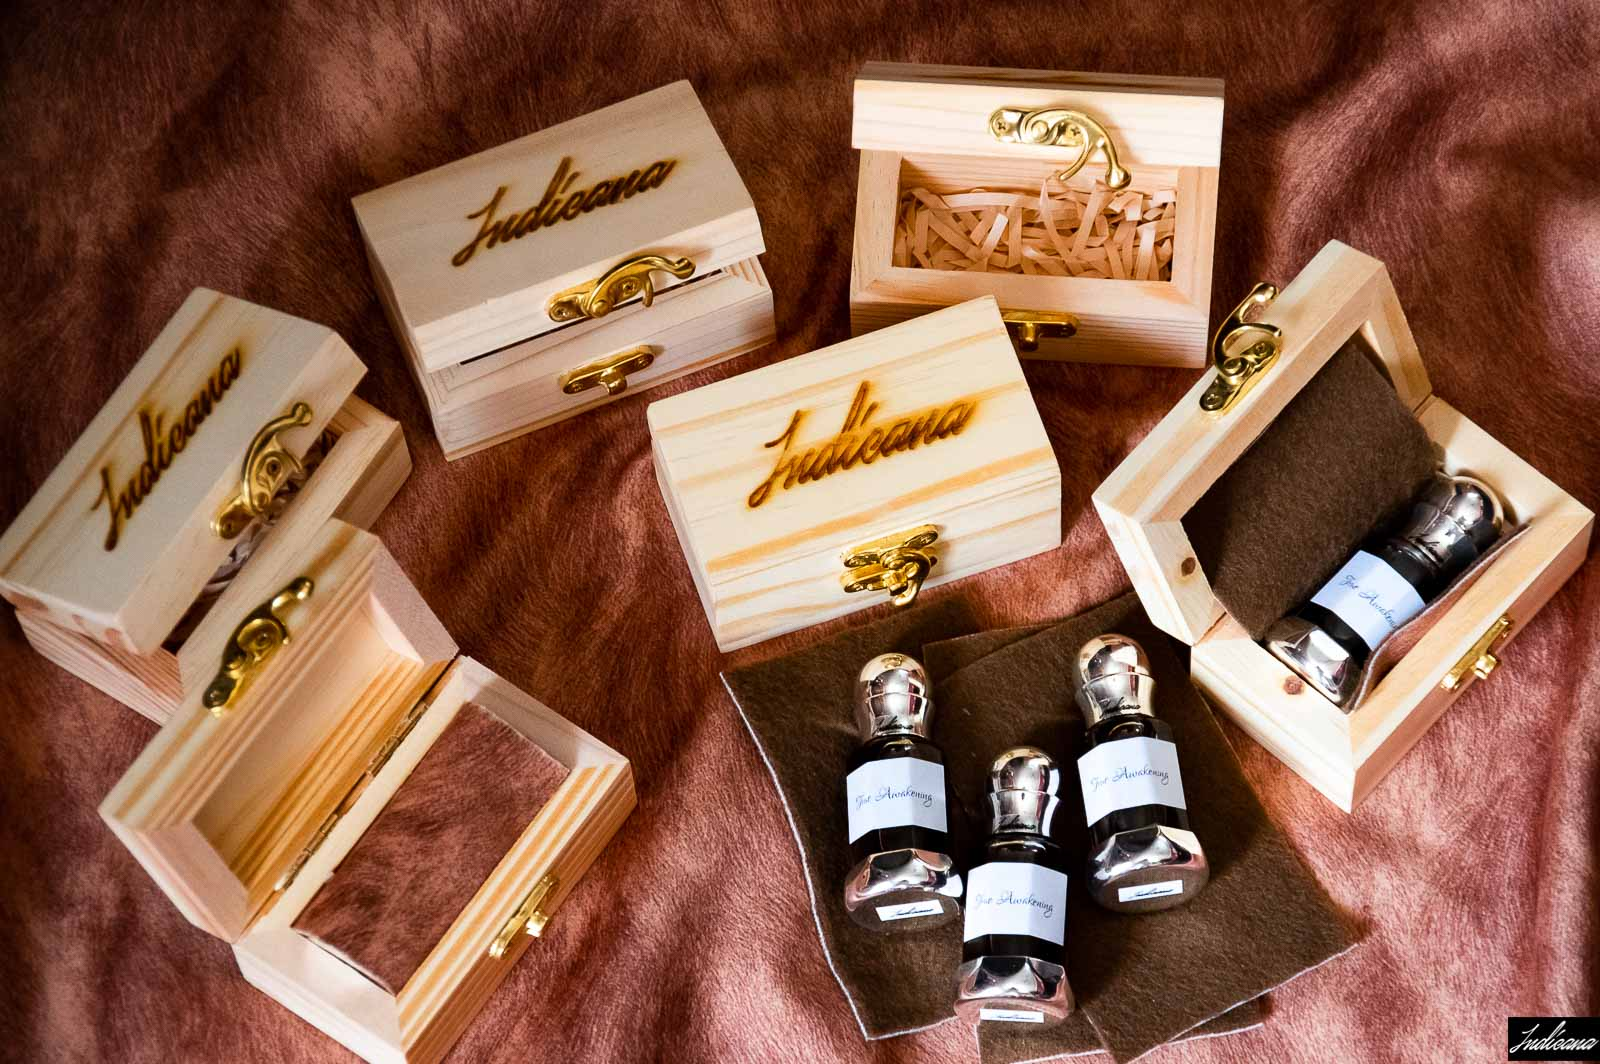 Luxurious Packaging of Oud Oil by Indicana Oud for Saudi Aramco and Royal Family